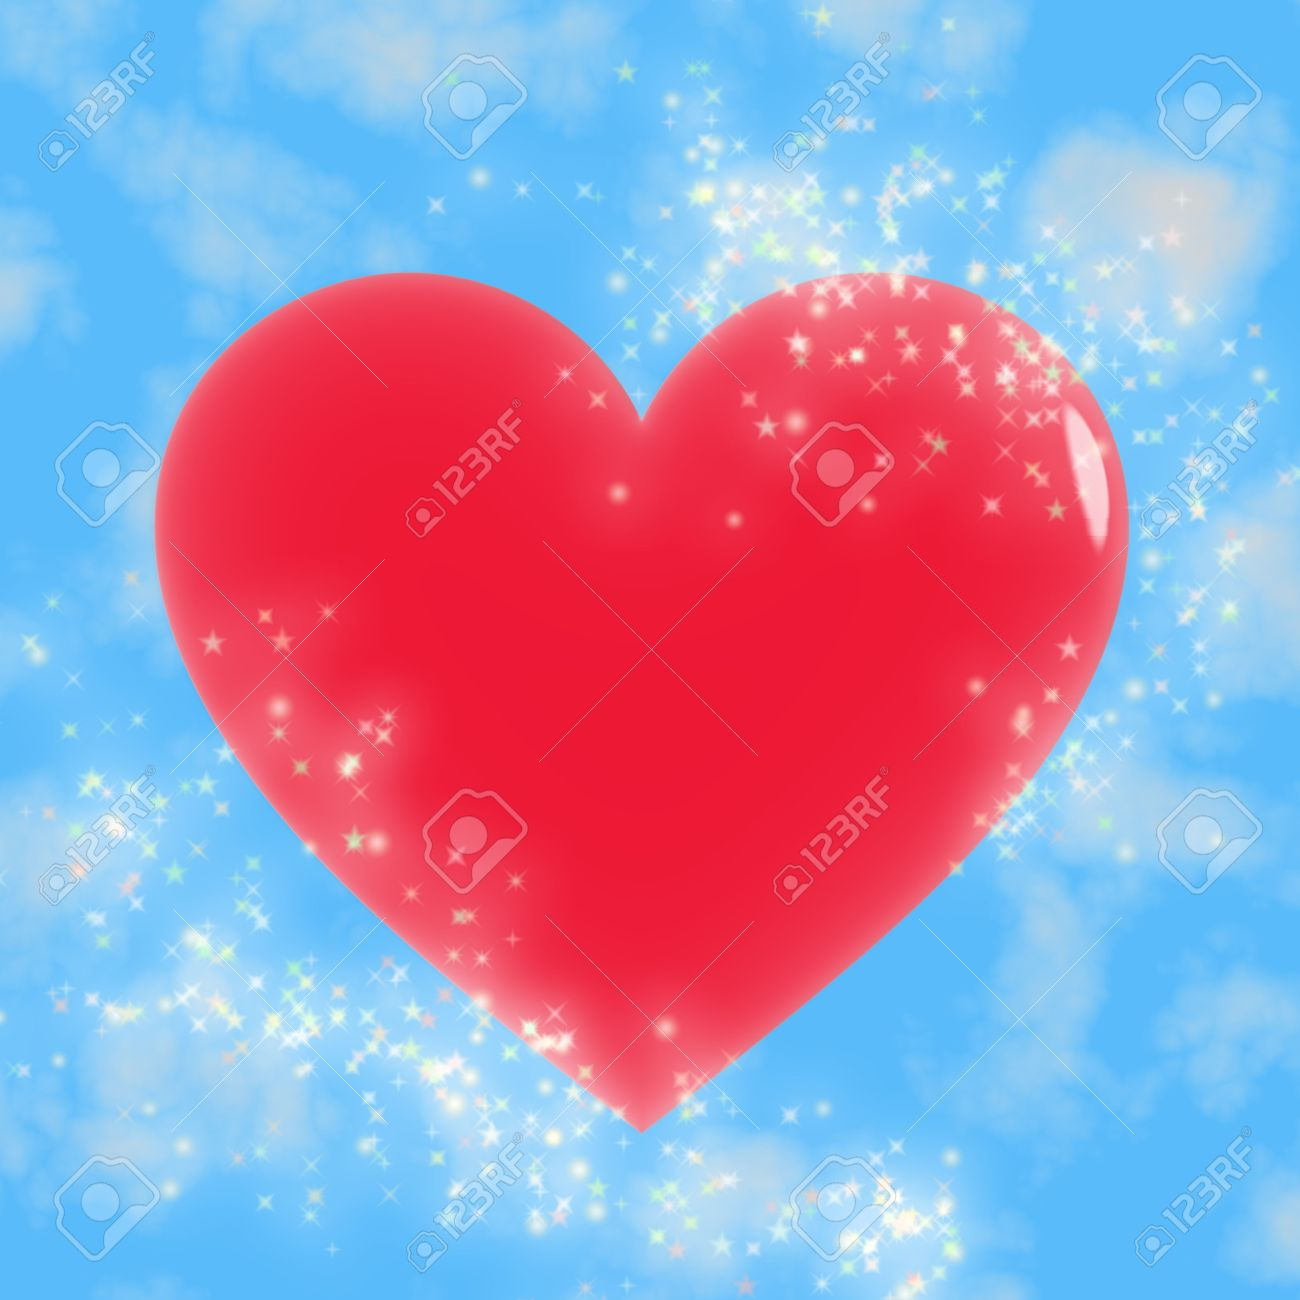 Red heart with lots of bright stars against a blue sky Stock Photo - 2886844